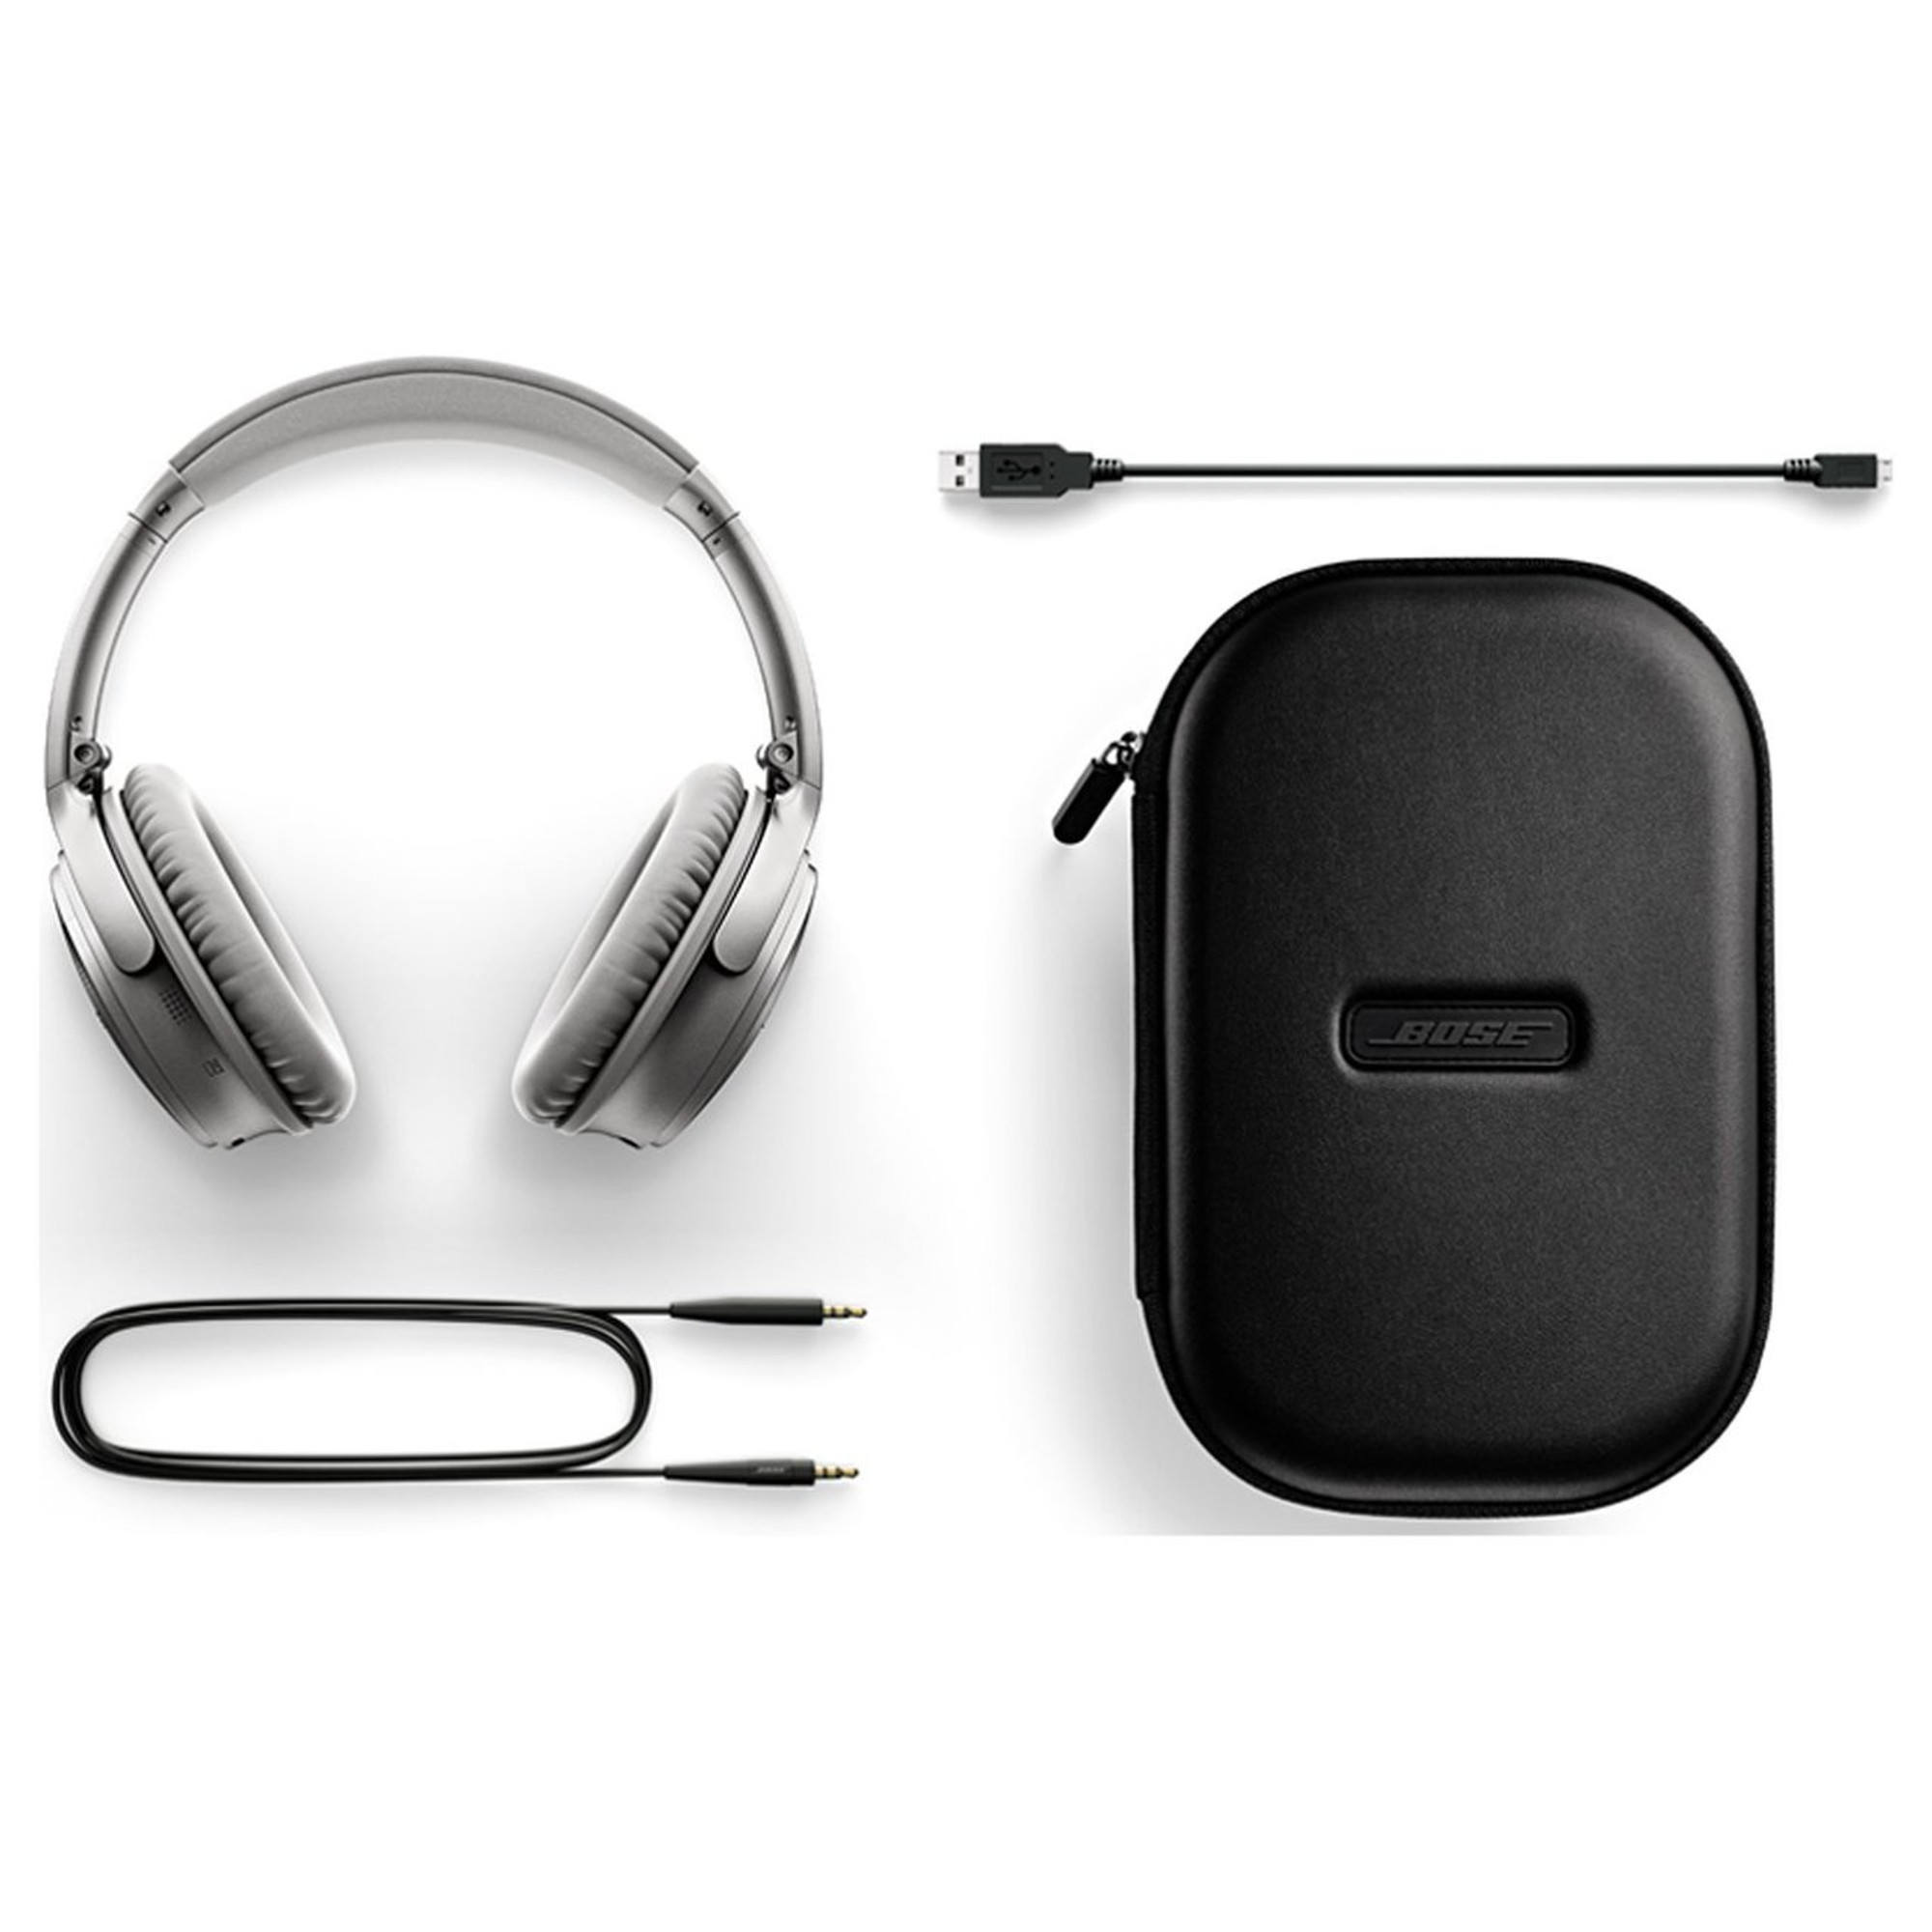 765f635177a ... Bose QC35 QuietComfort 35 Wireless Noise Cancelling Headphones (Silver)